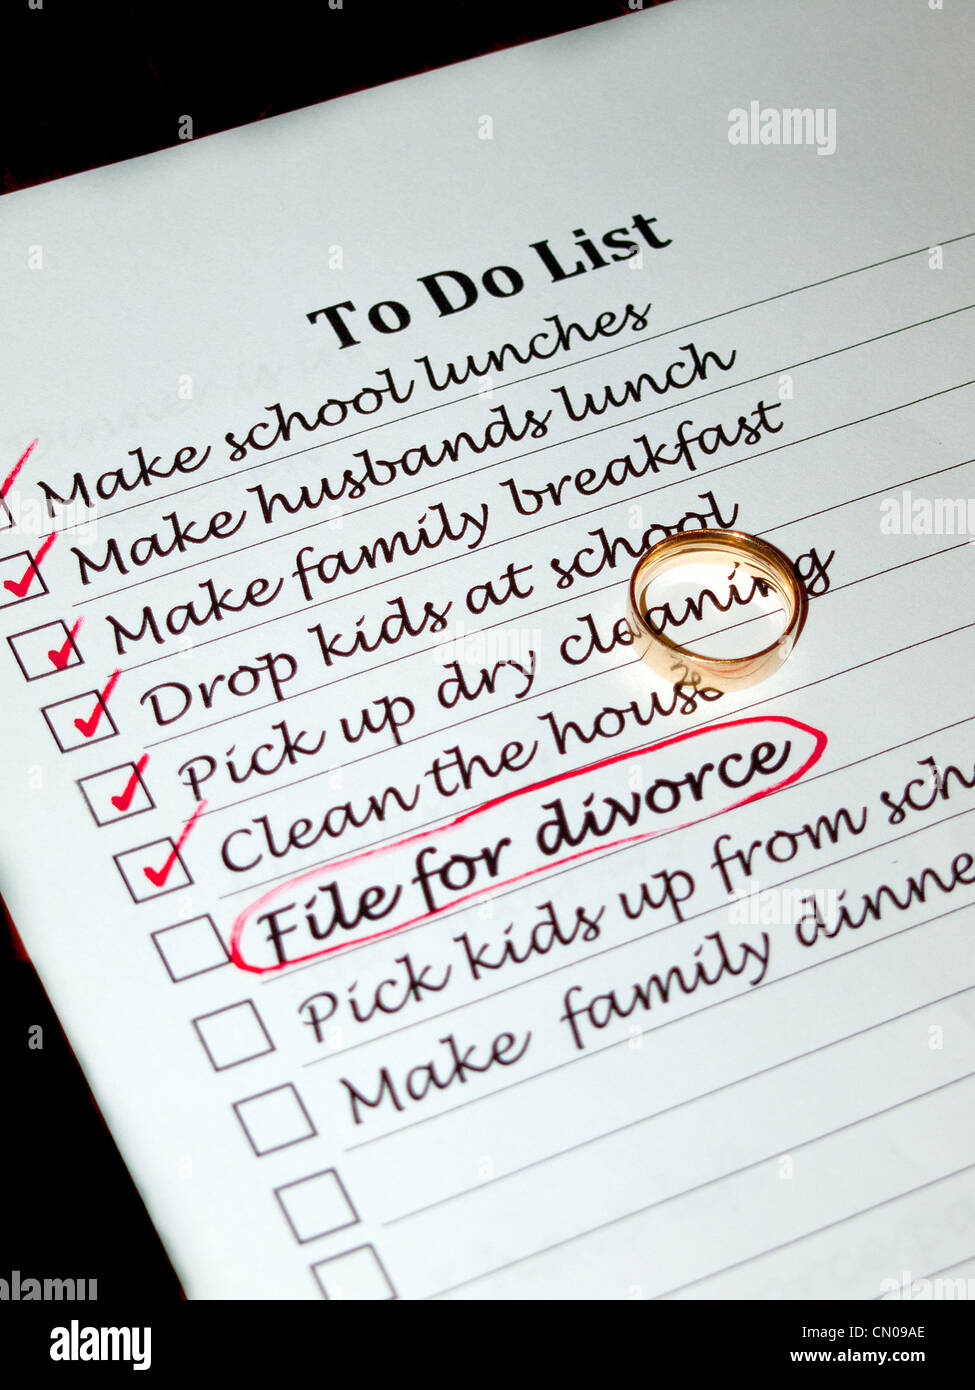 Marriage Item Stock Photos & Marriage Item Stock Images - Alamy